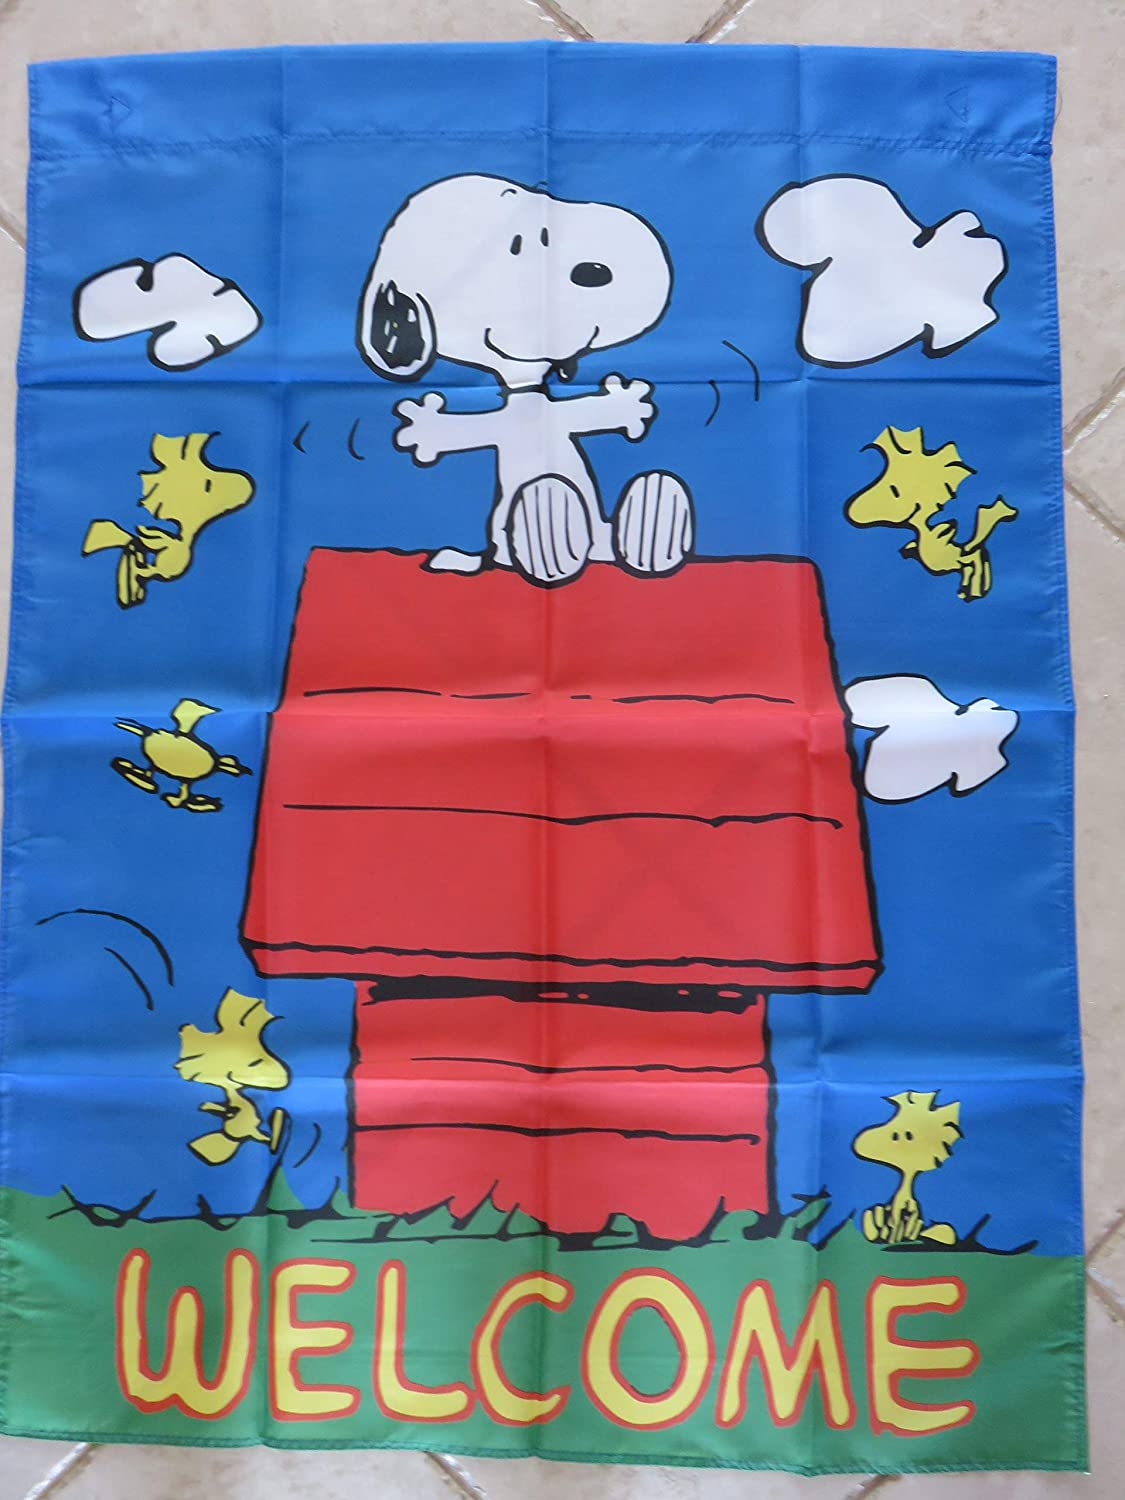 Peanuts Snoopy Woodstock Welcome House Yard Flag Large